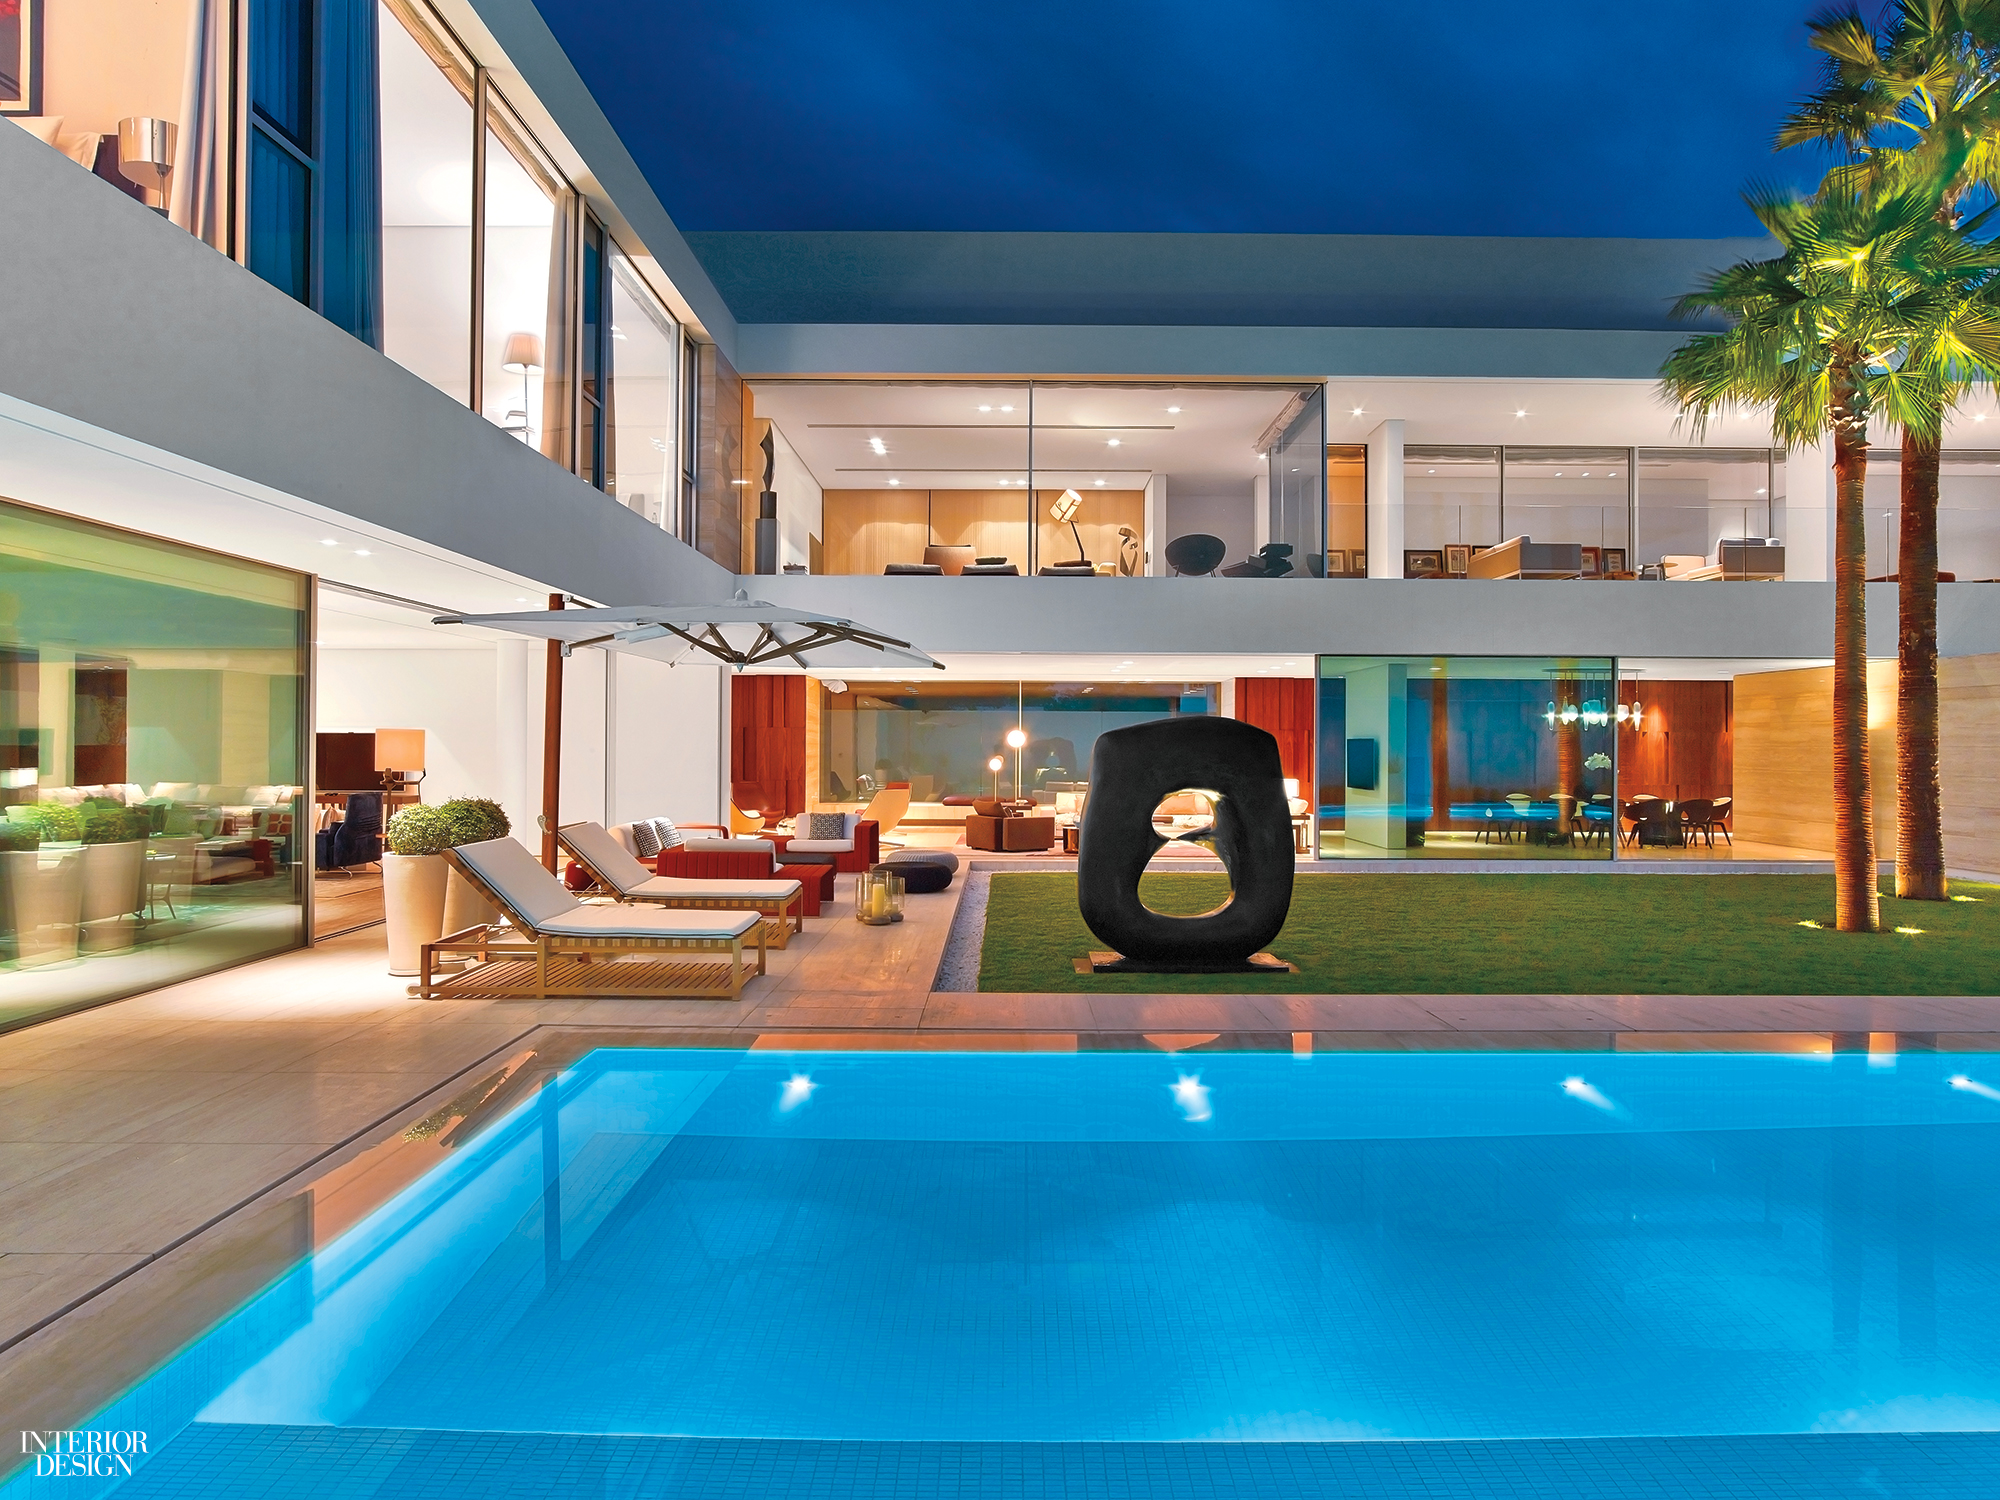 Tihany Design Completes First Residential Project in 25 Years in Dubai